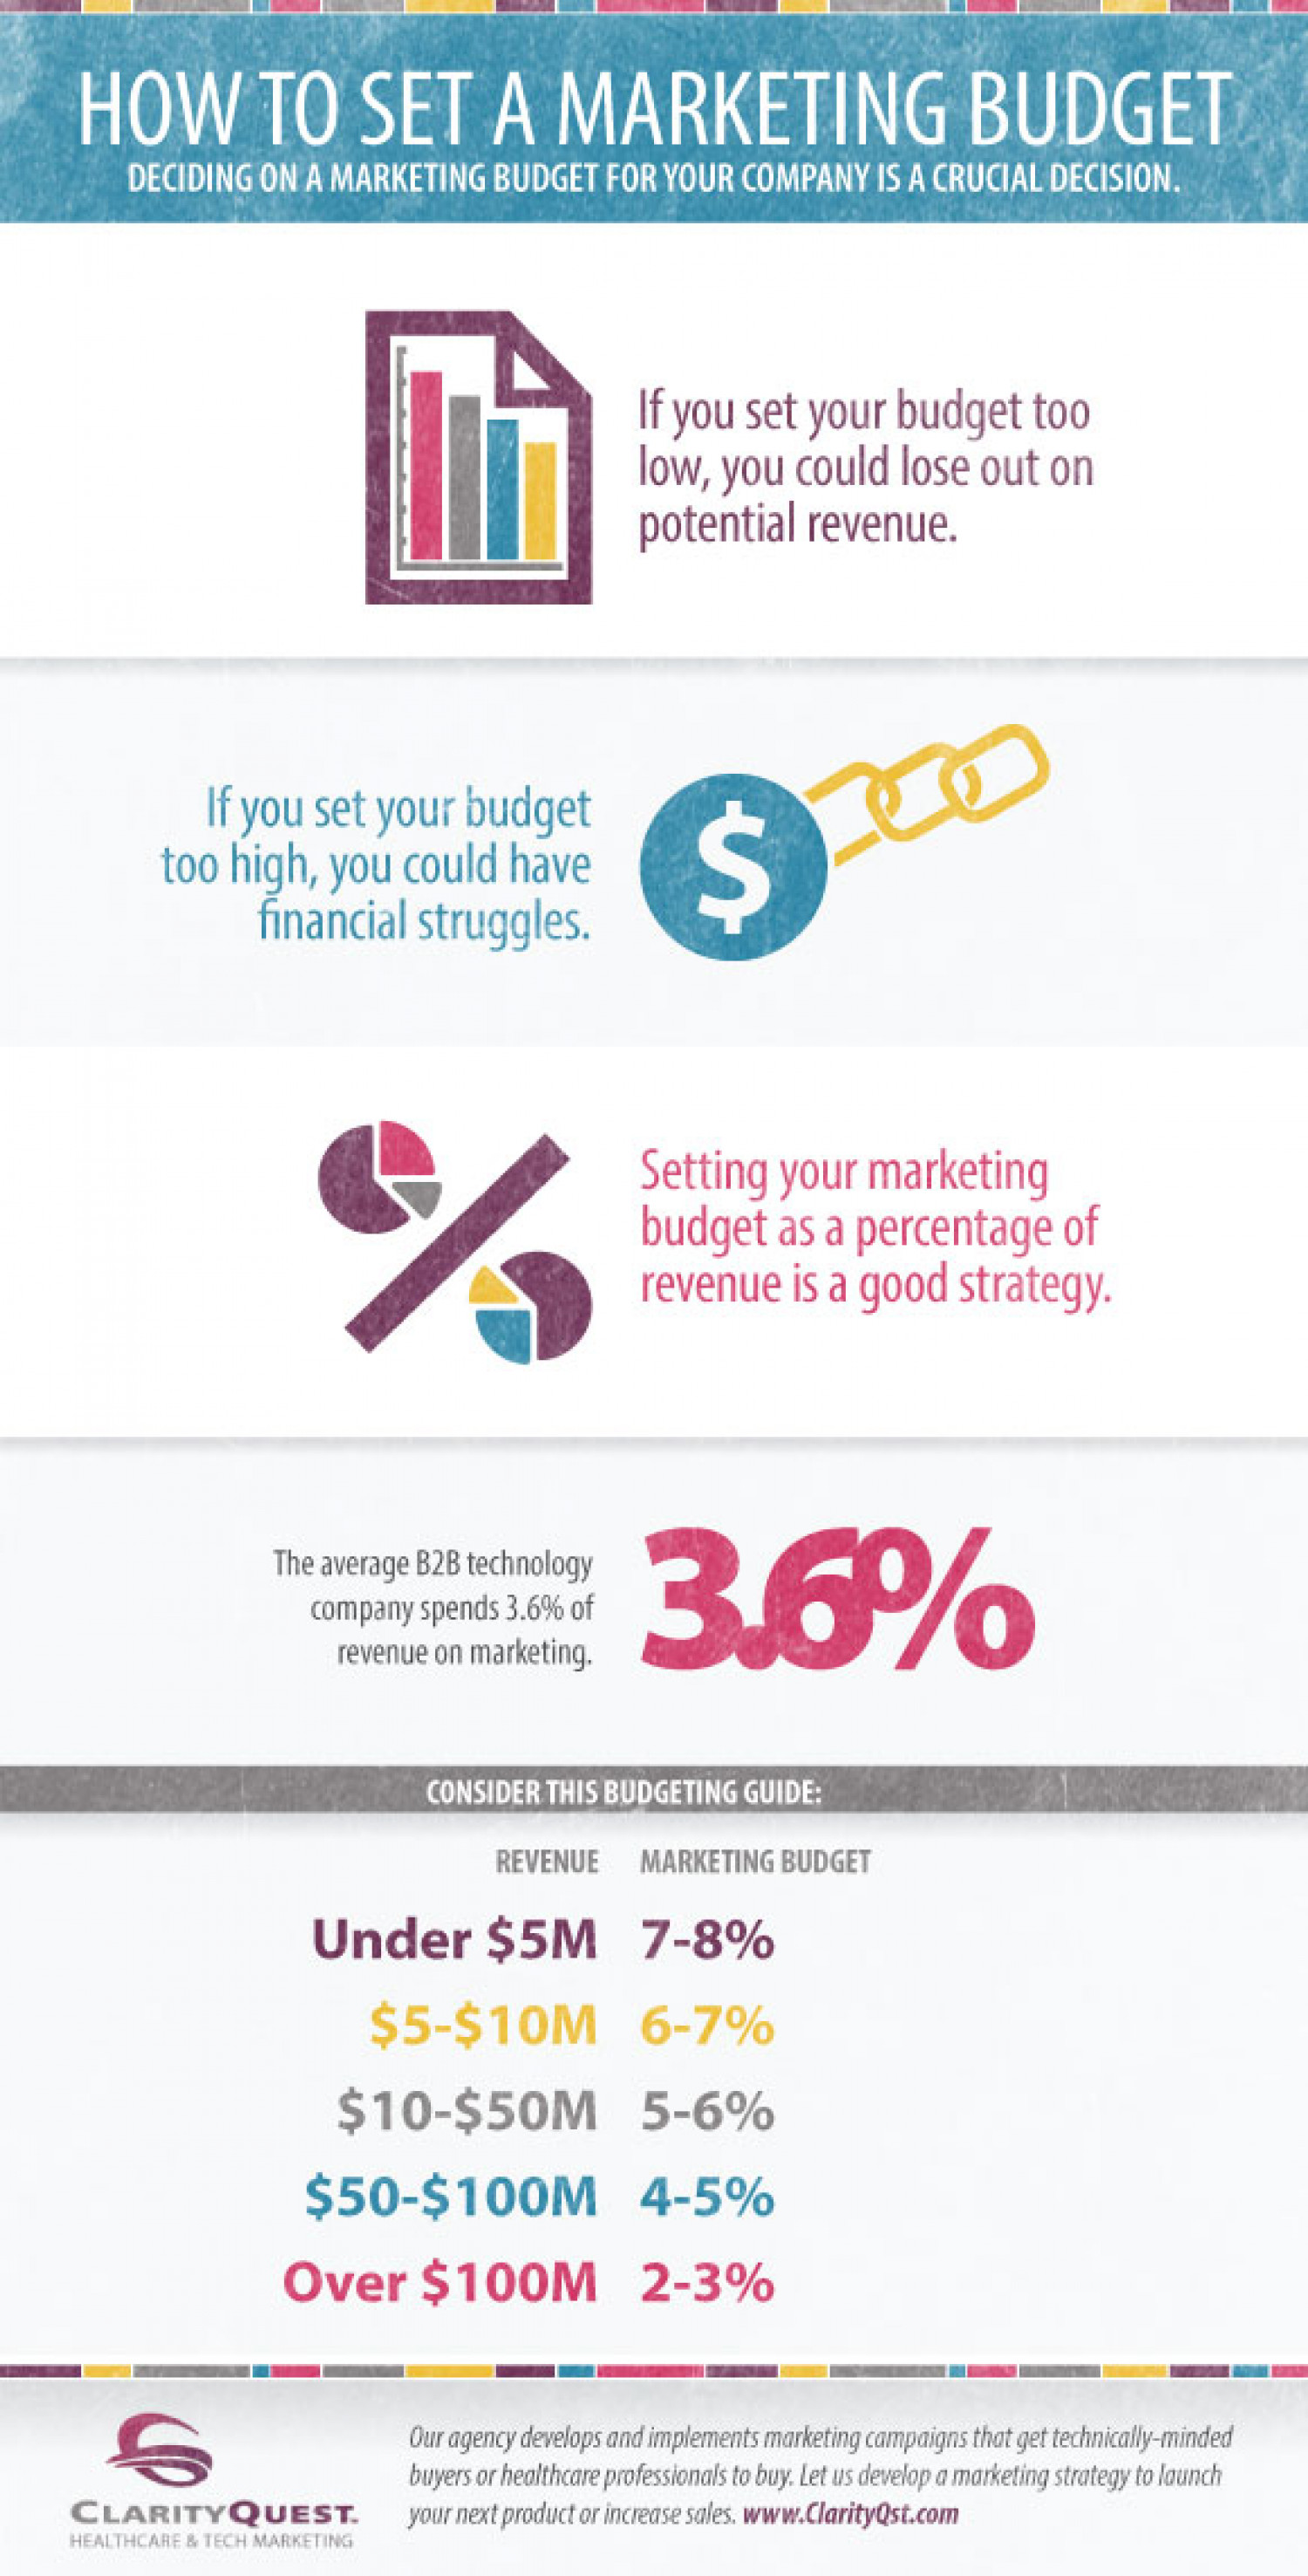 How To Set A Marketing Budget Infographic